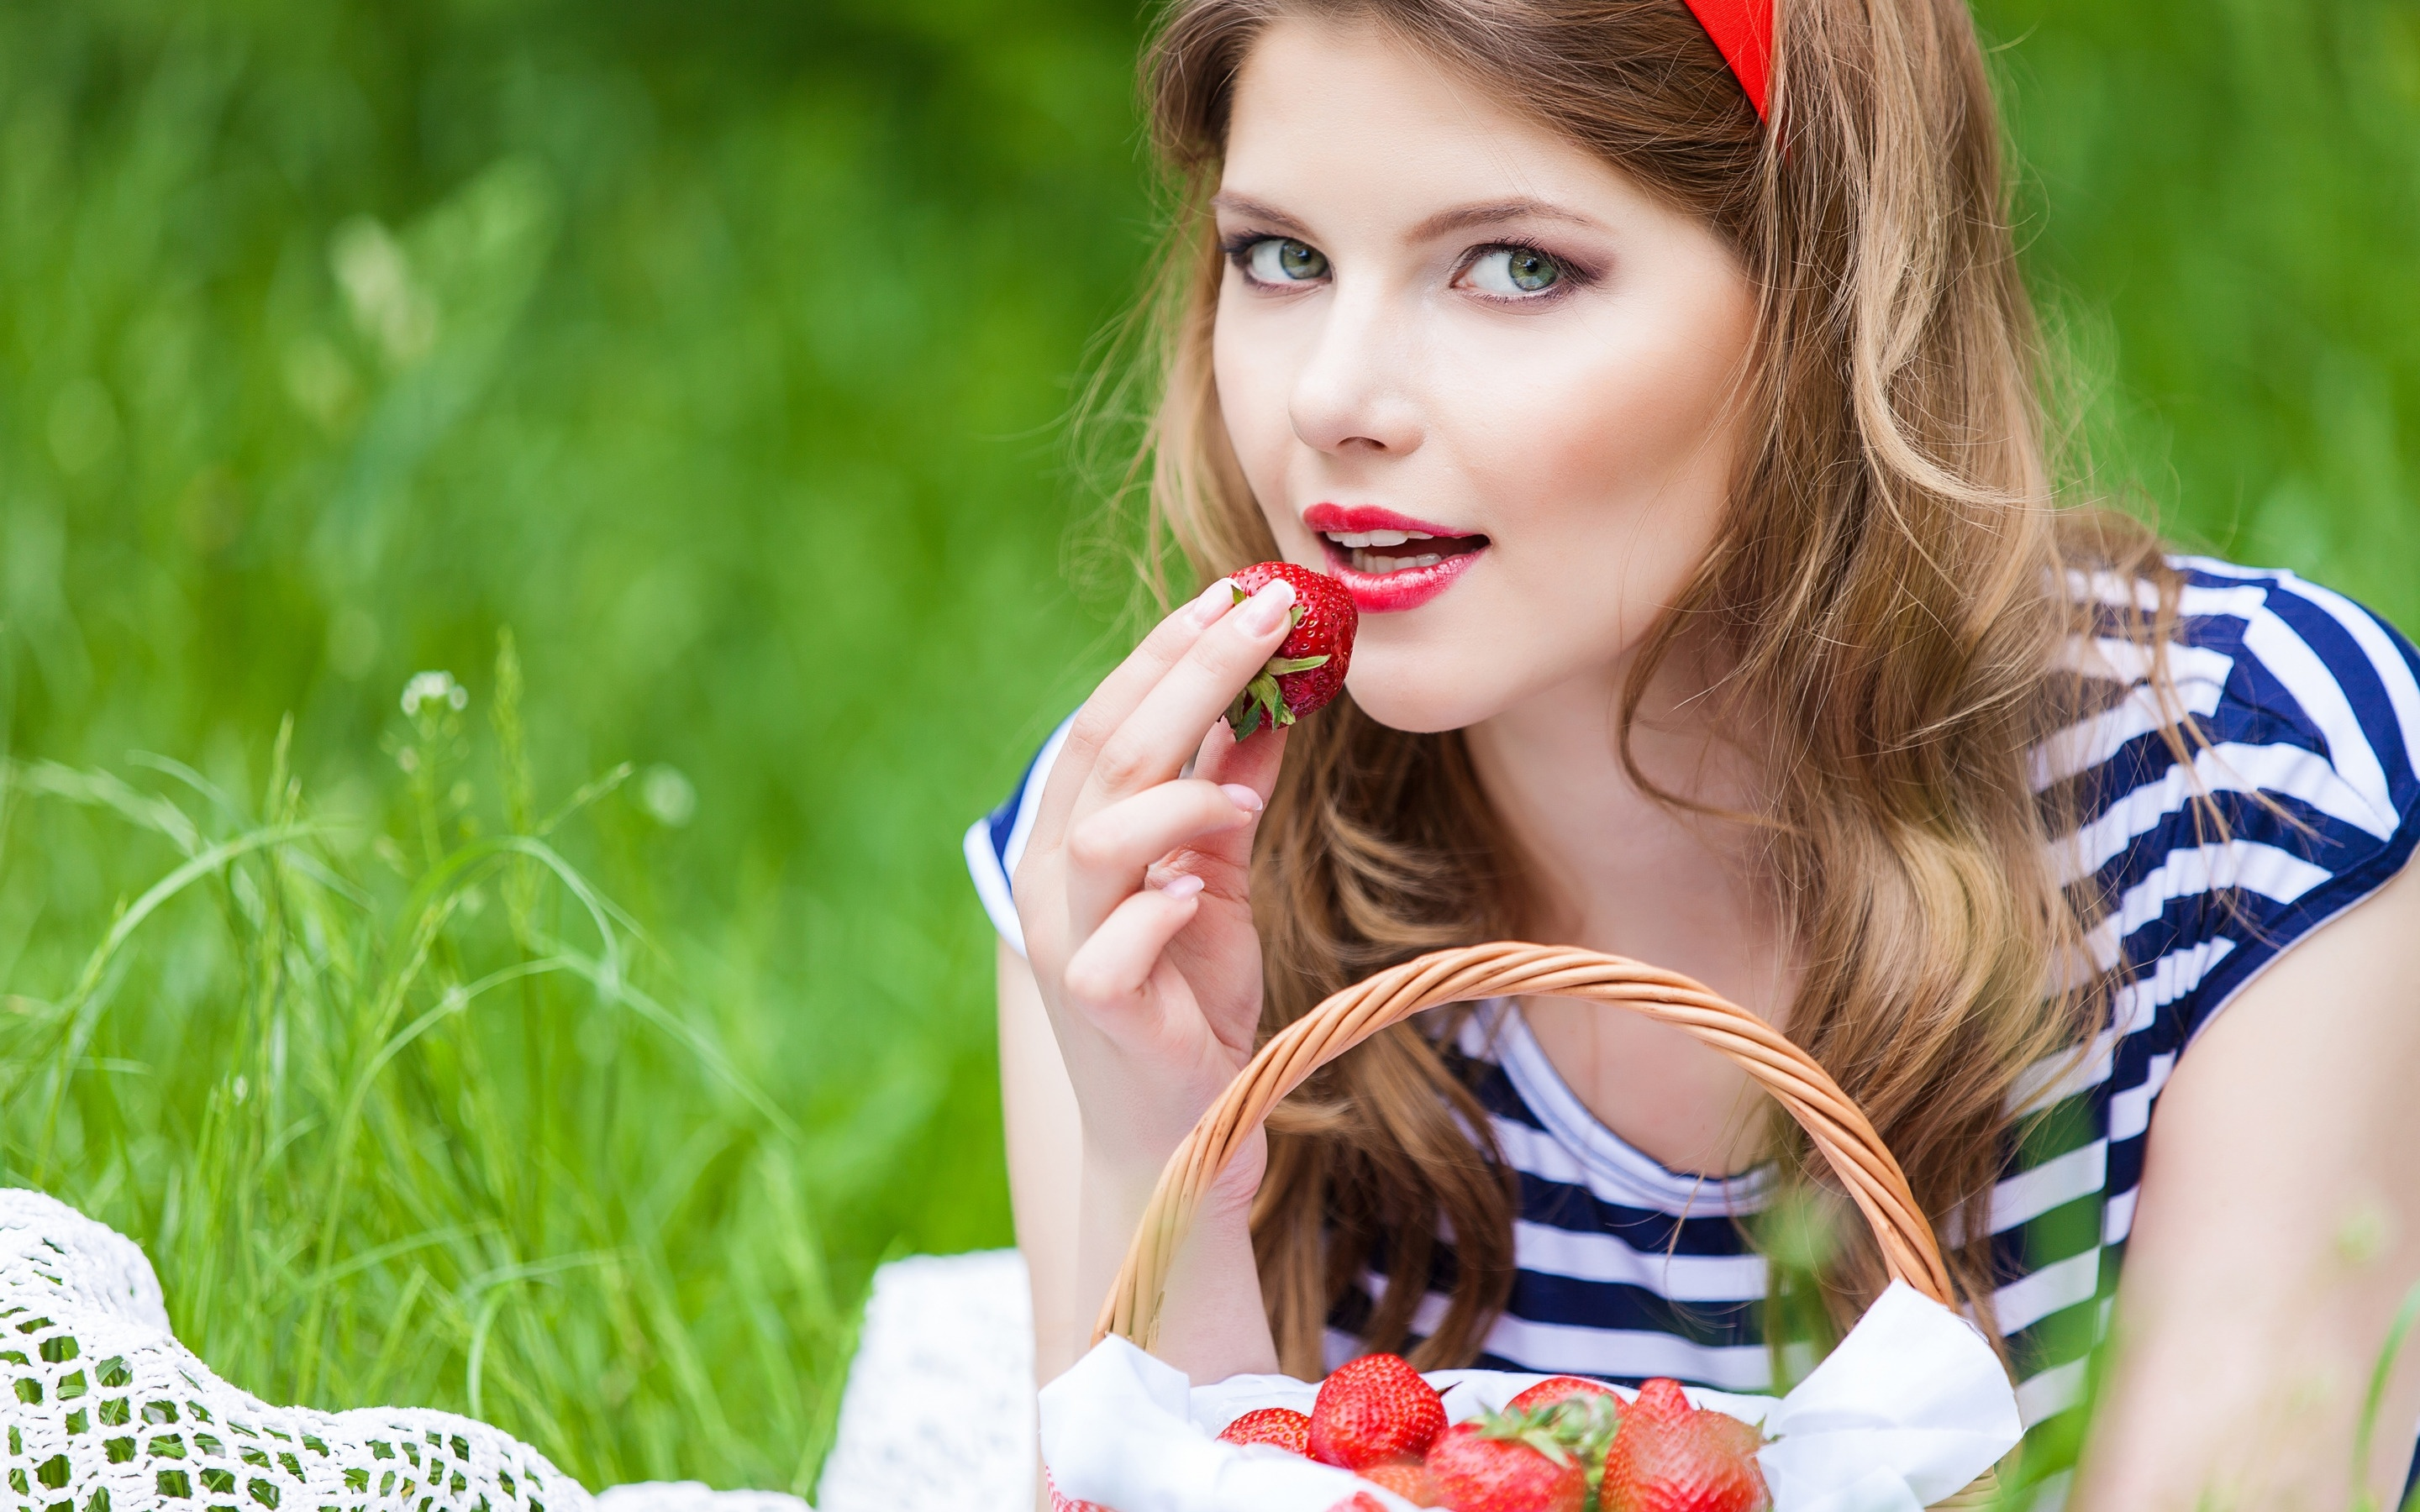 Picture Face Girls Strawberry Berry Hands Glance female young woman Staring